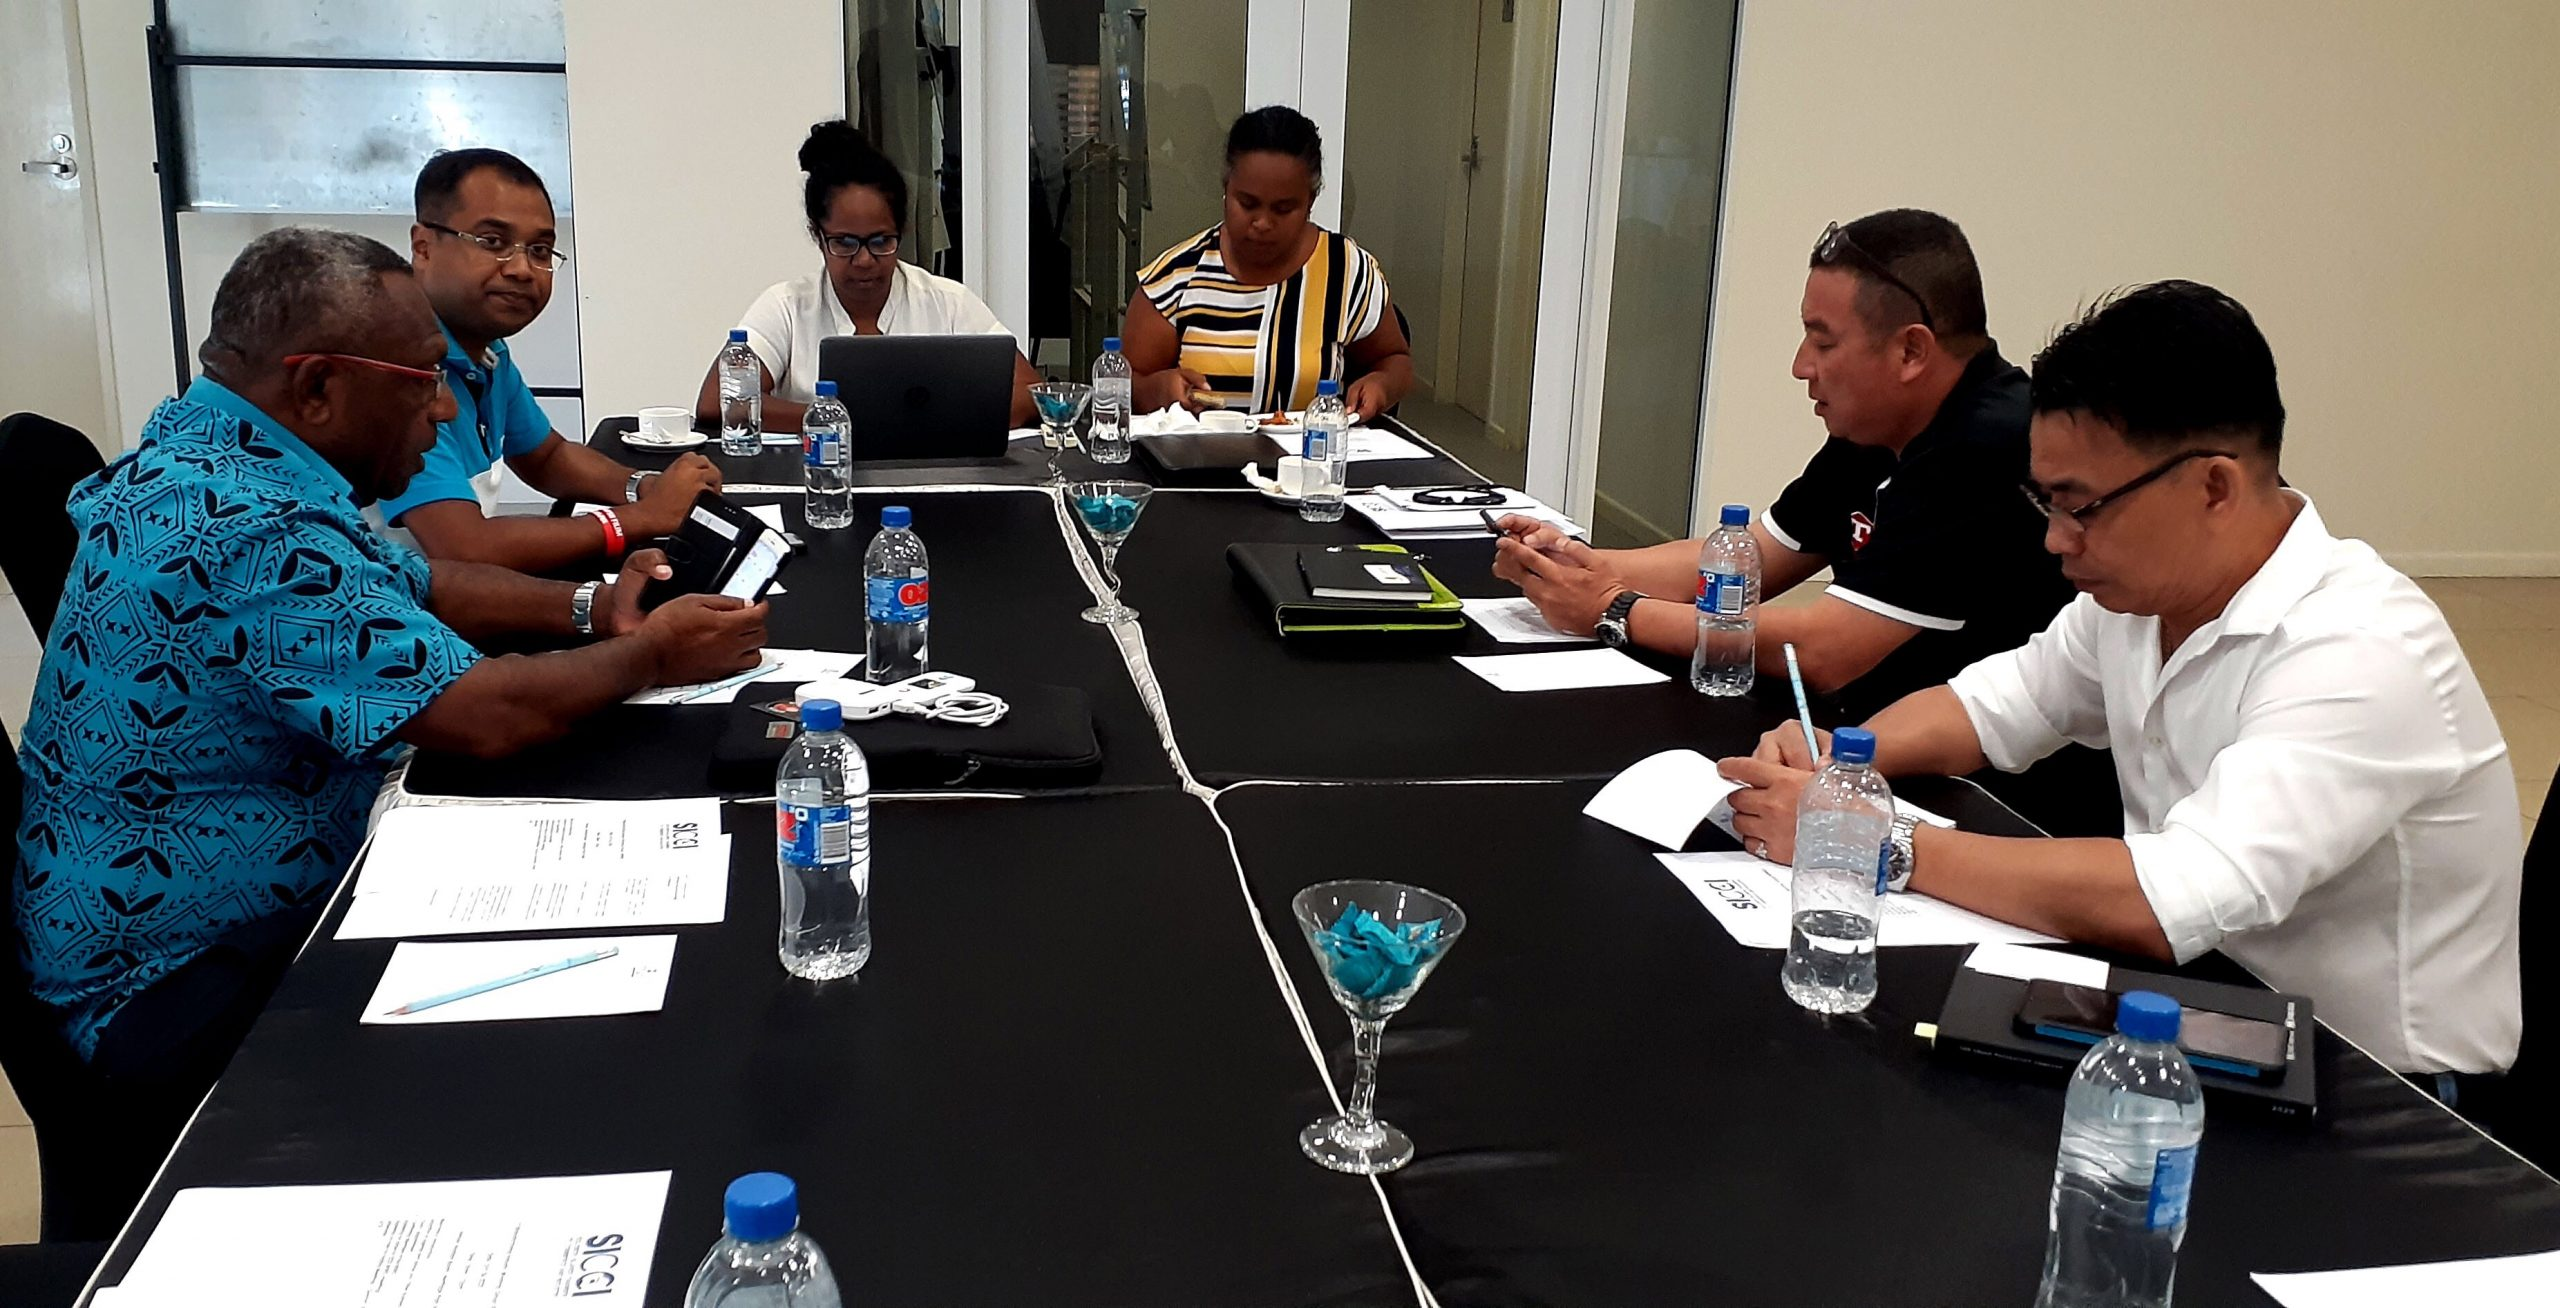 Manufacturing Industry Working Group established